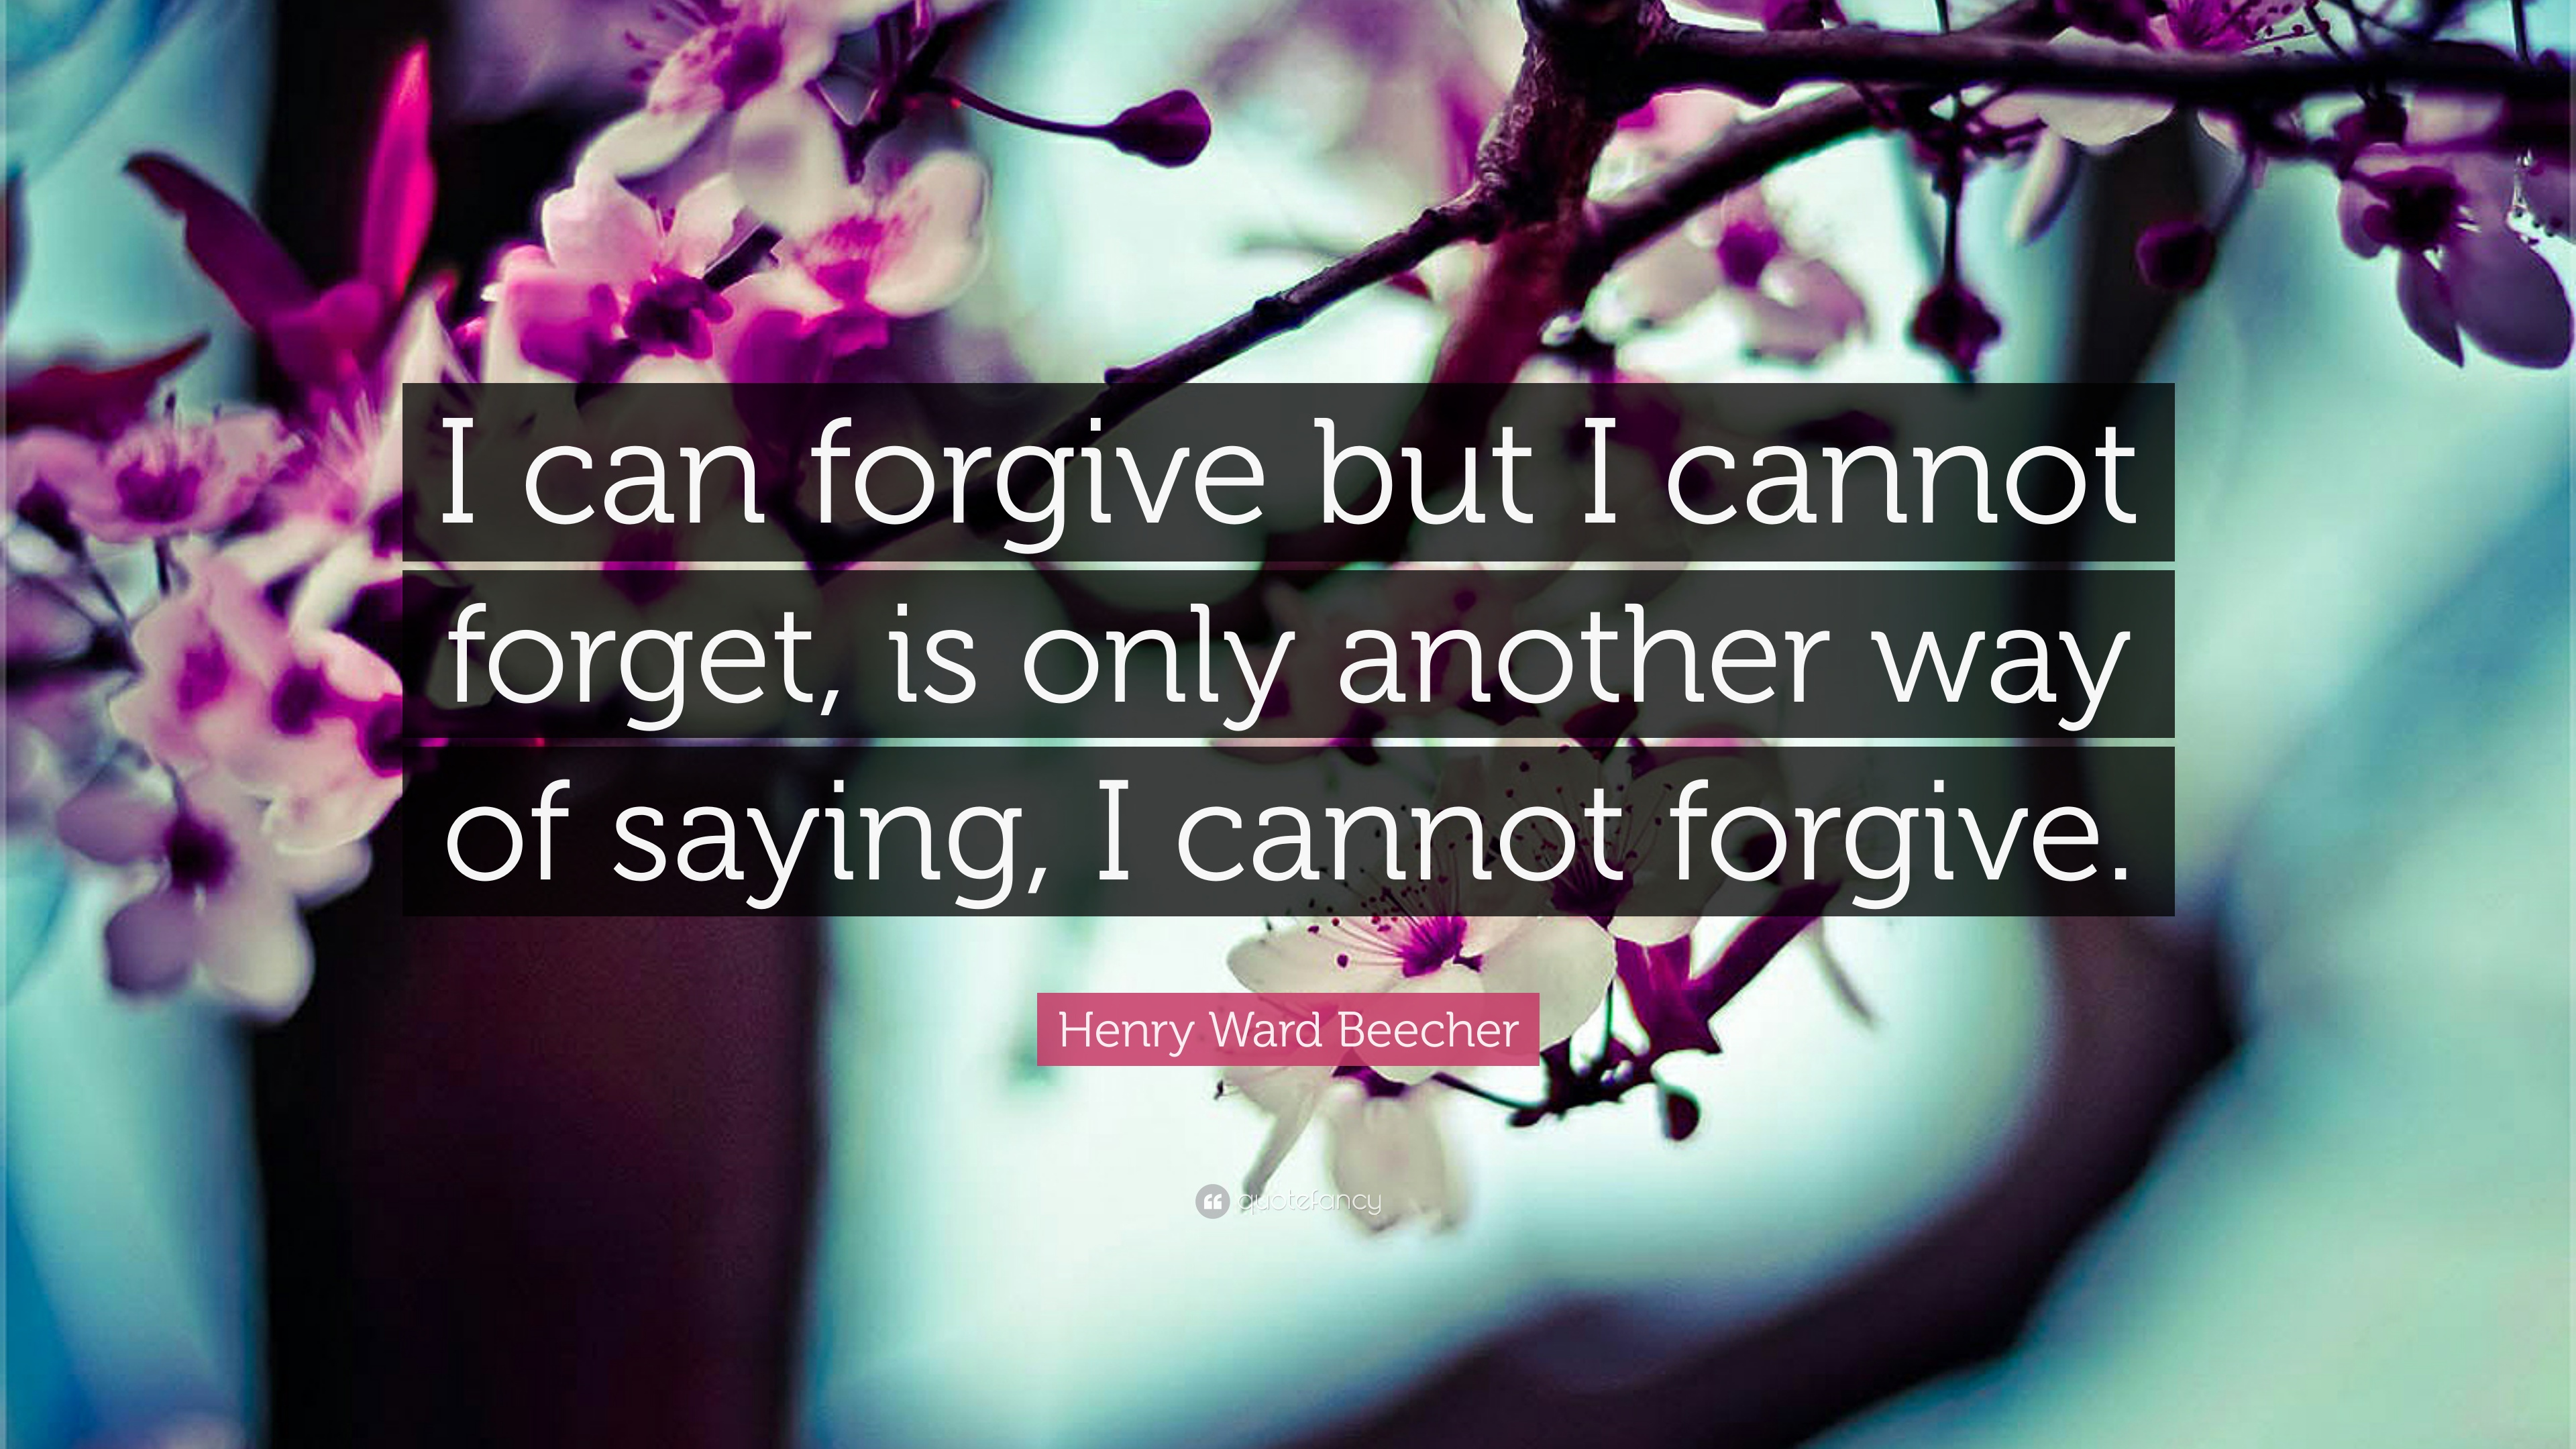 Quotes About Friendship And Forgiveness Forgiveness Quotes 40 Wallpapers  Quotefancy